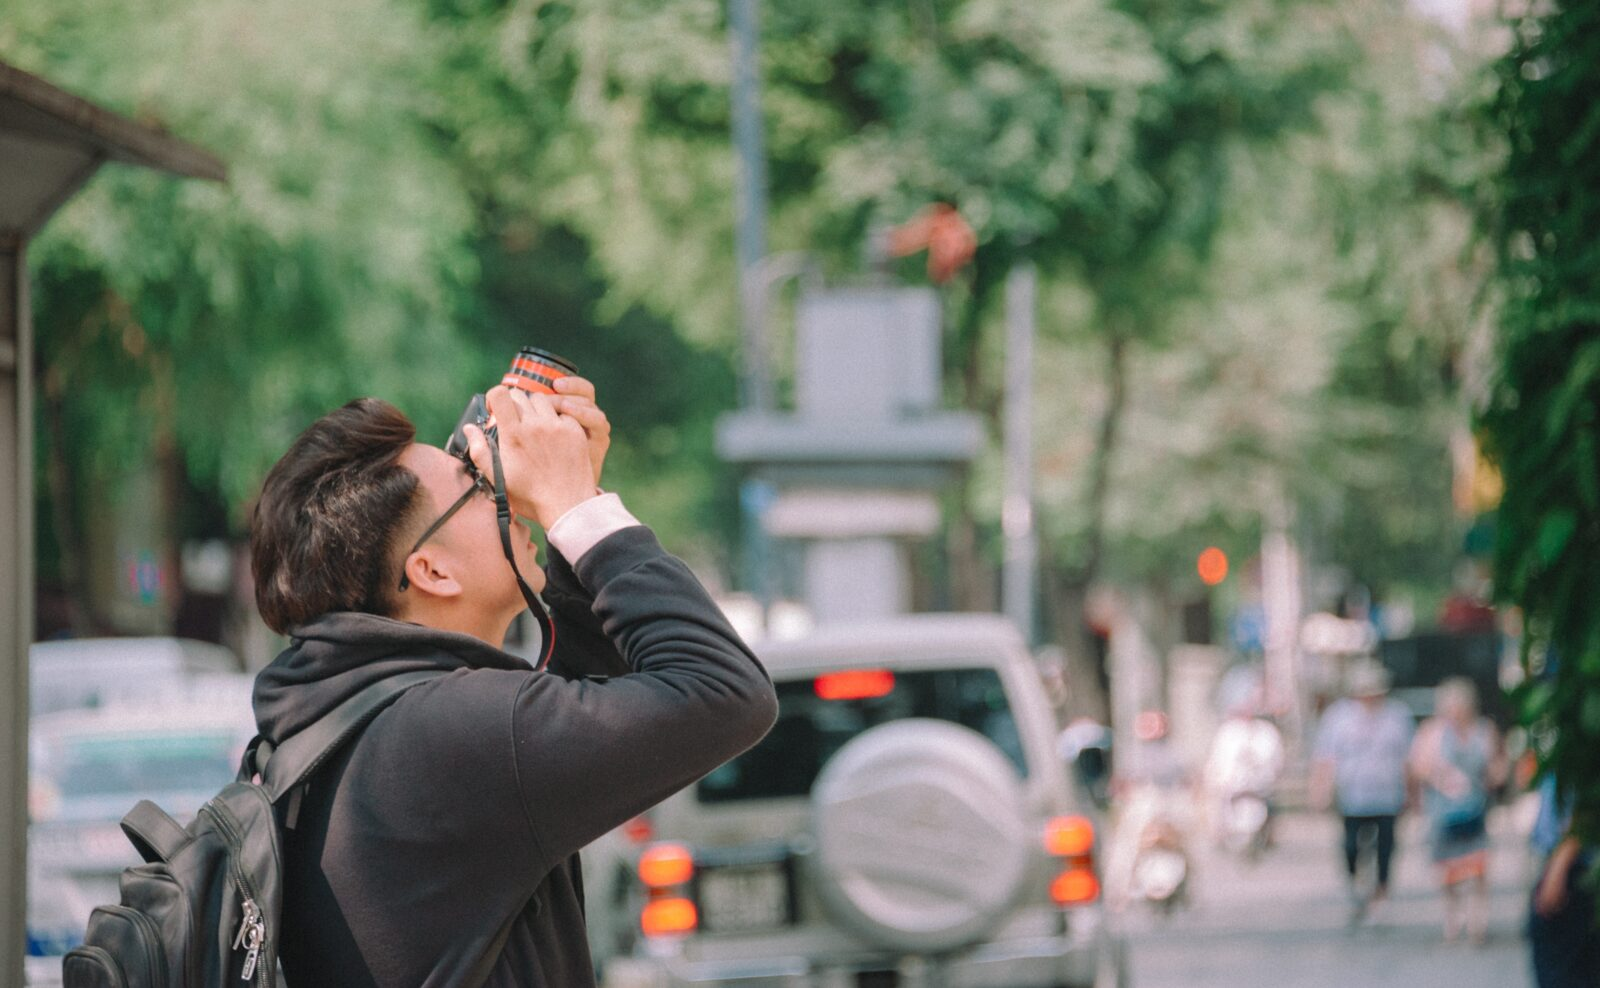 How to Take Photos for Your Car Accident Claim